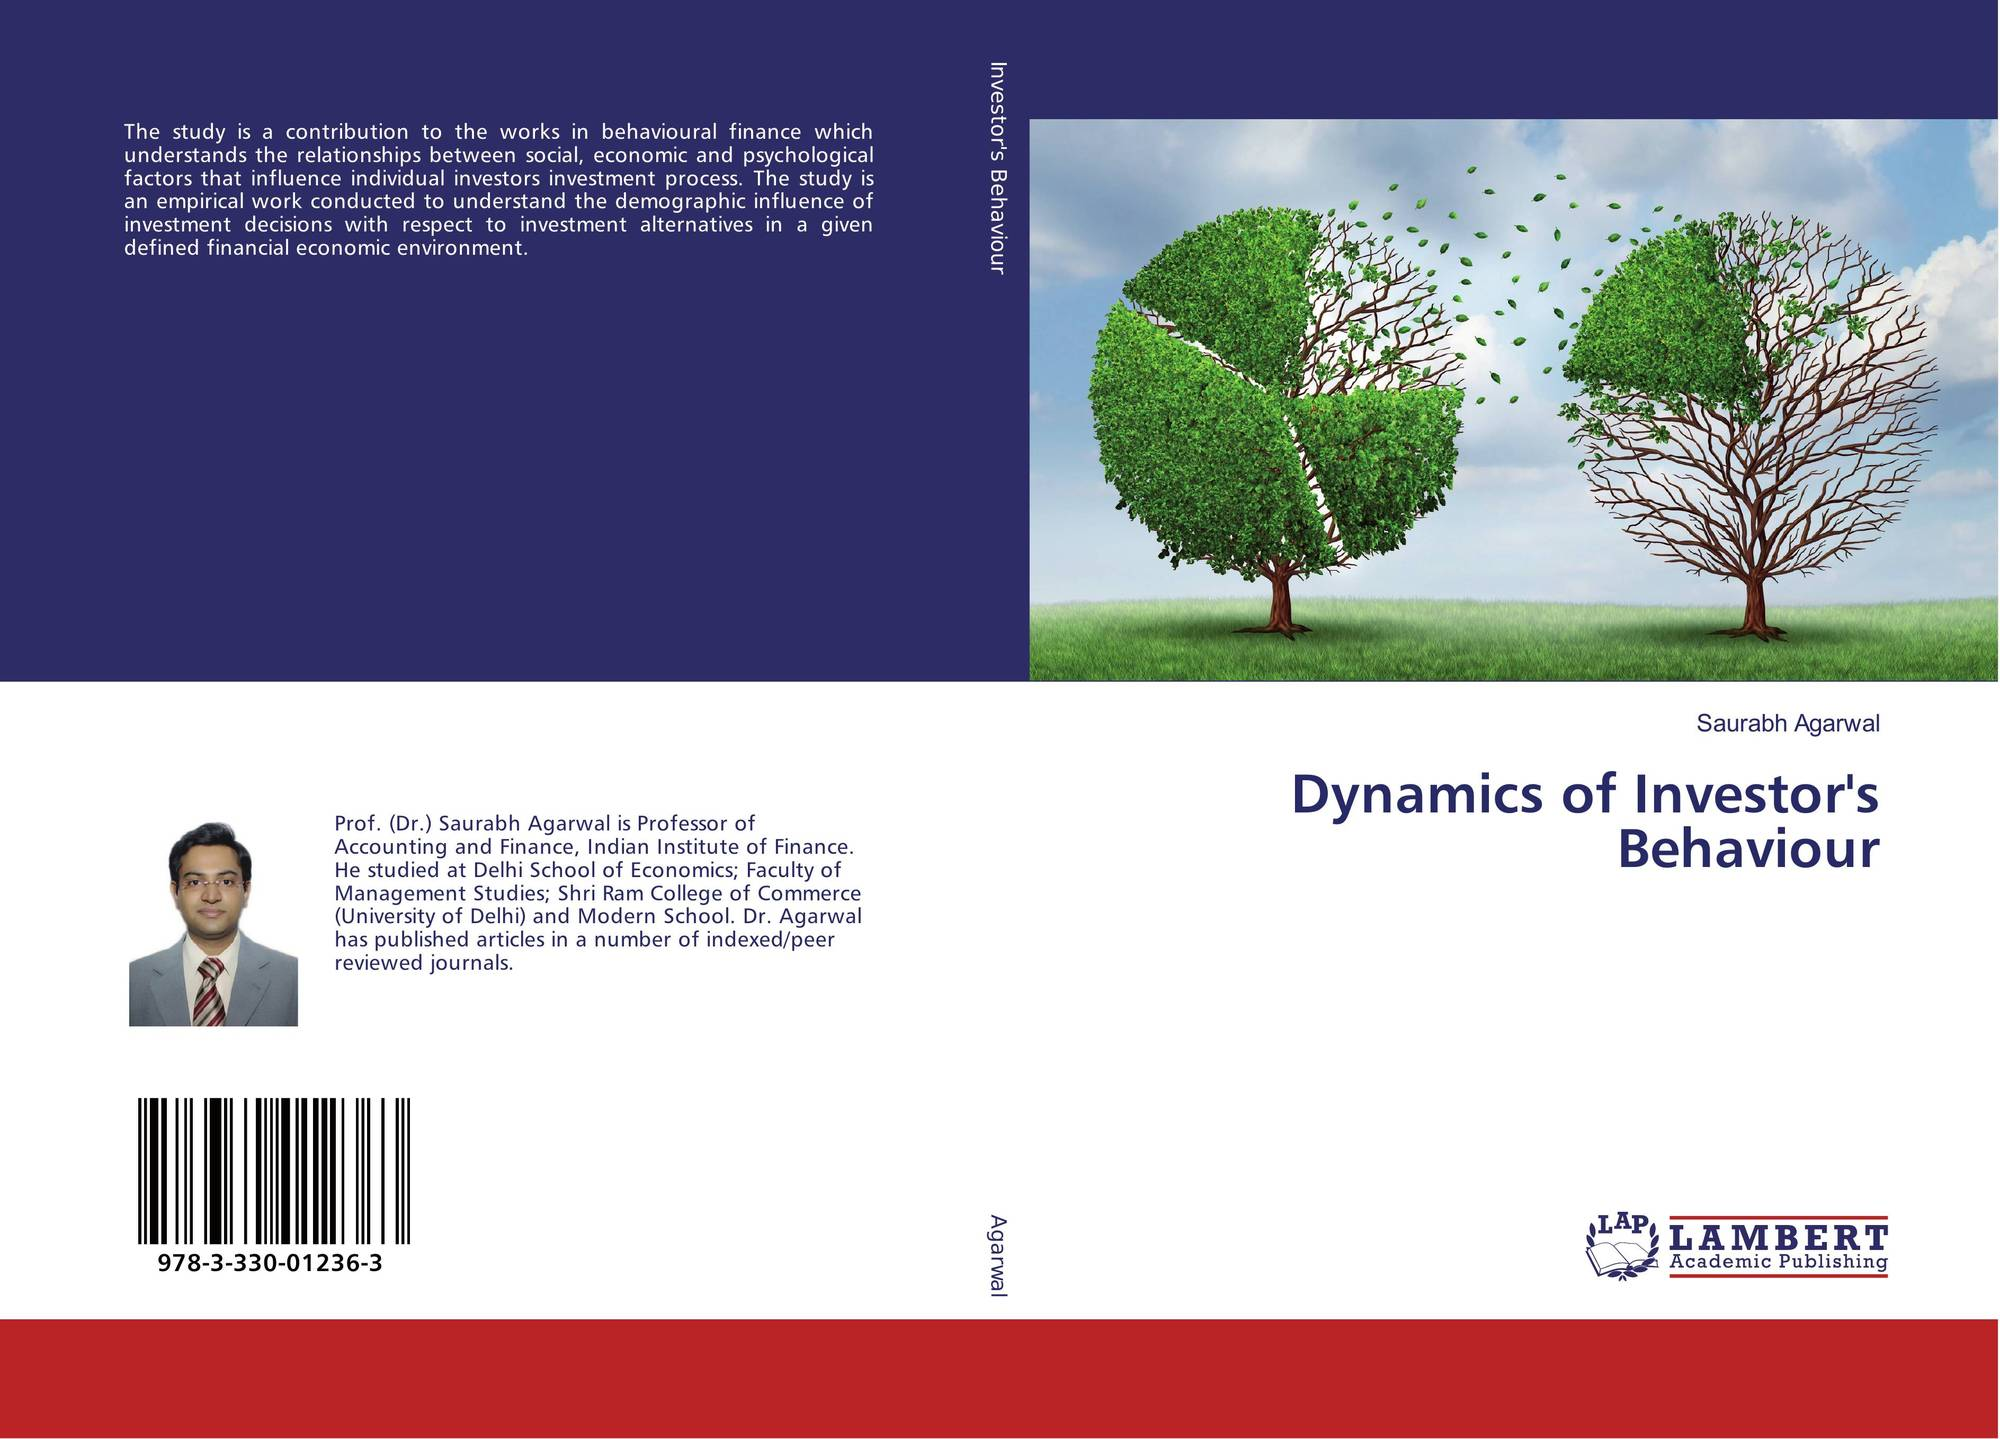 an empirical study of individual investor's The present empirical study is an attempt to examine the investors' perception towards various investment avenues in vellore city, tamil nadu, india design/methodology/approach: primary data using convenient sampling through questionnaire and interview method as well as secondary data from wide range of literature from various journal.